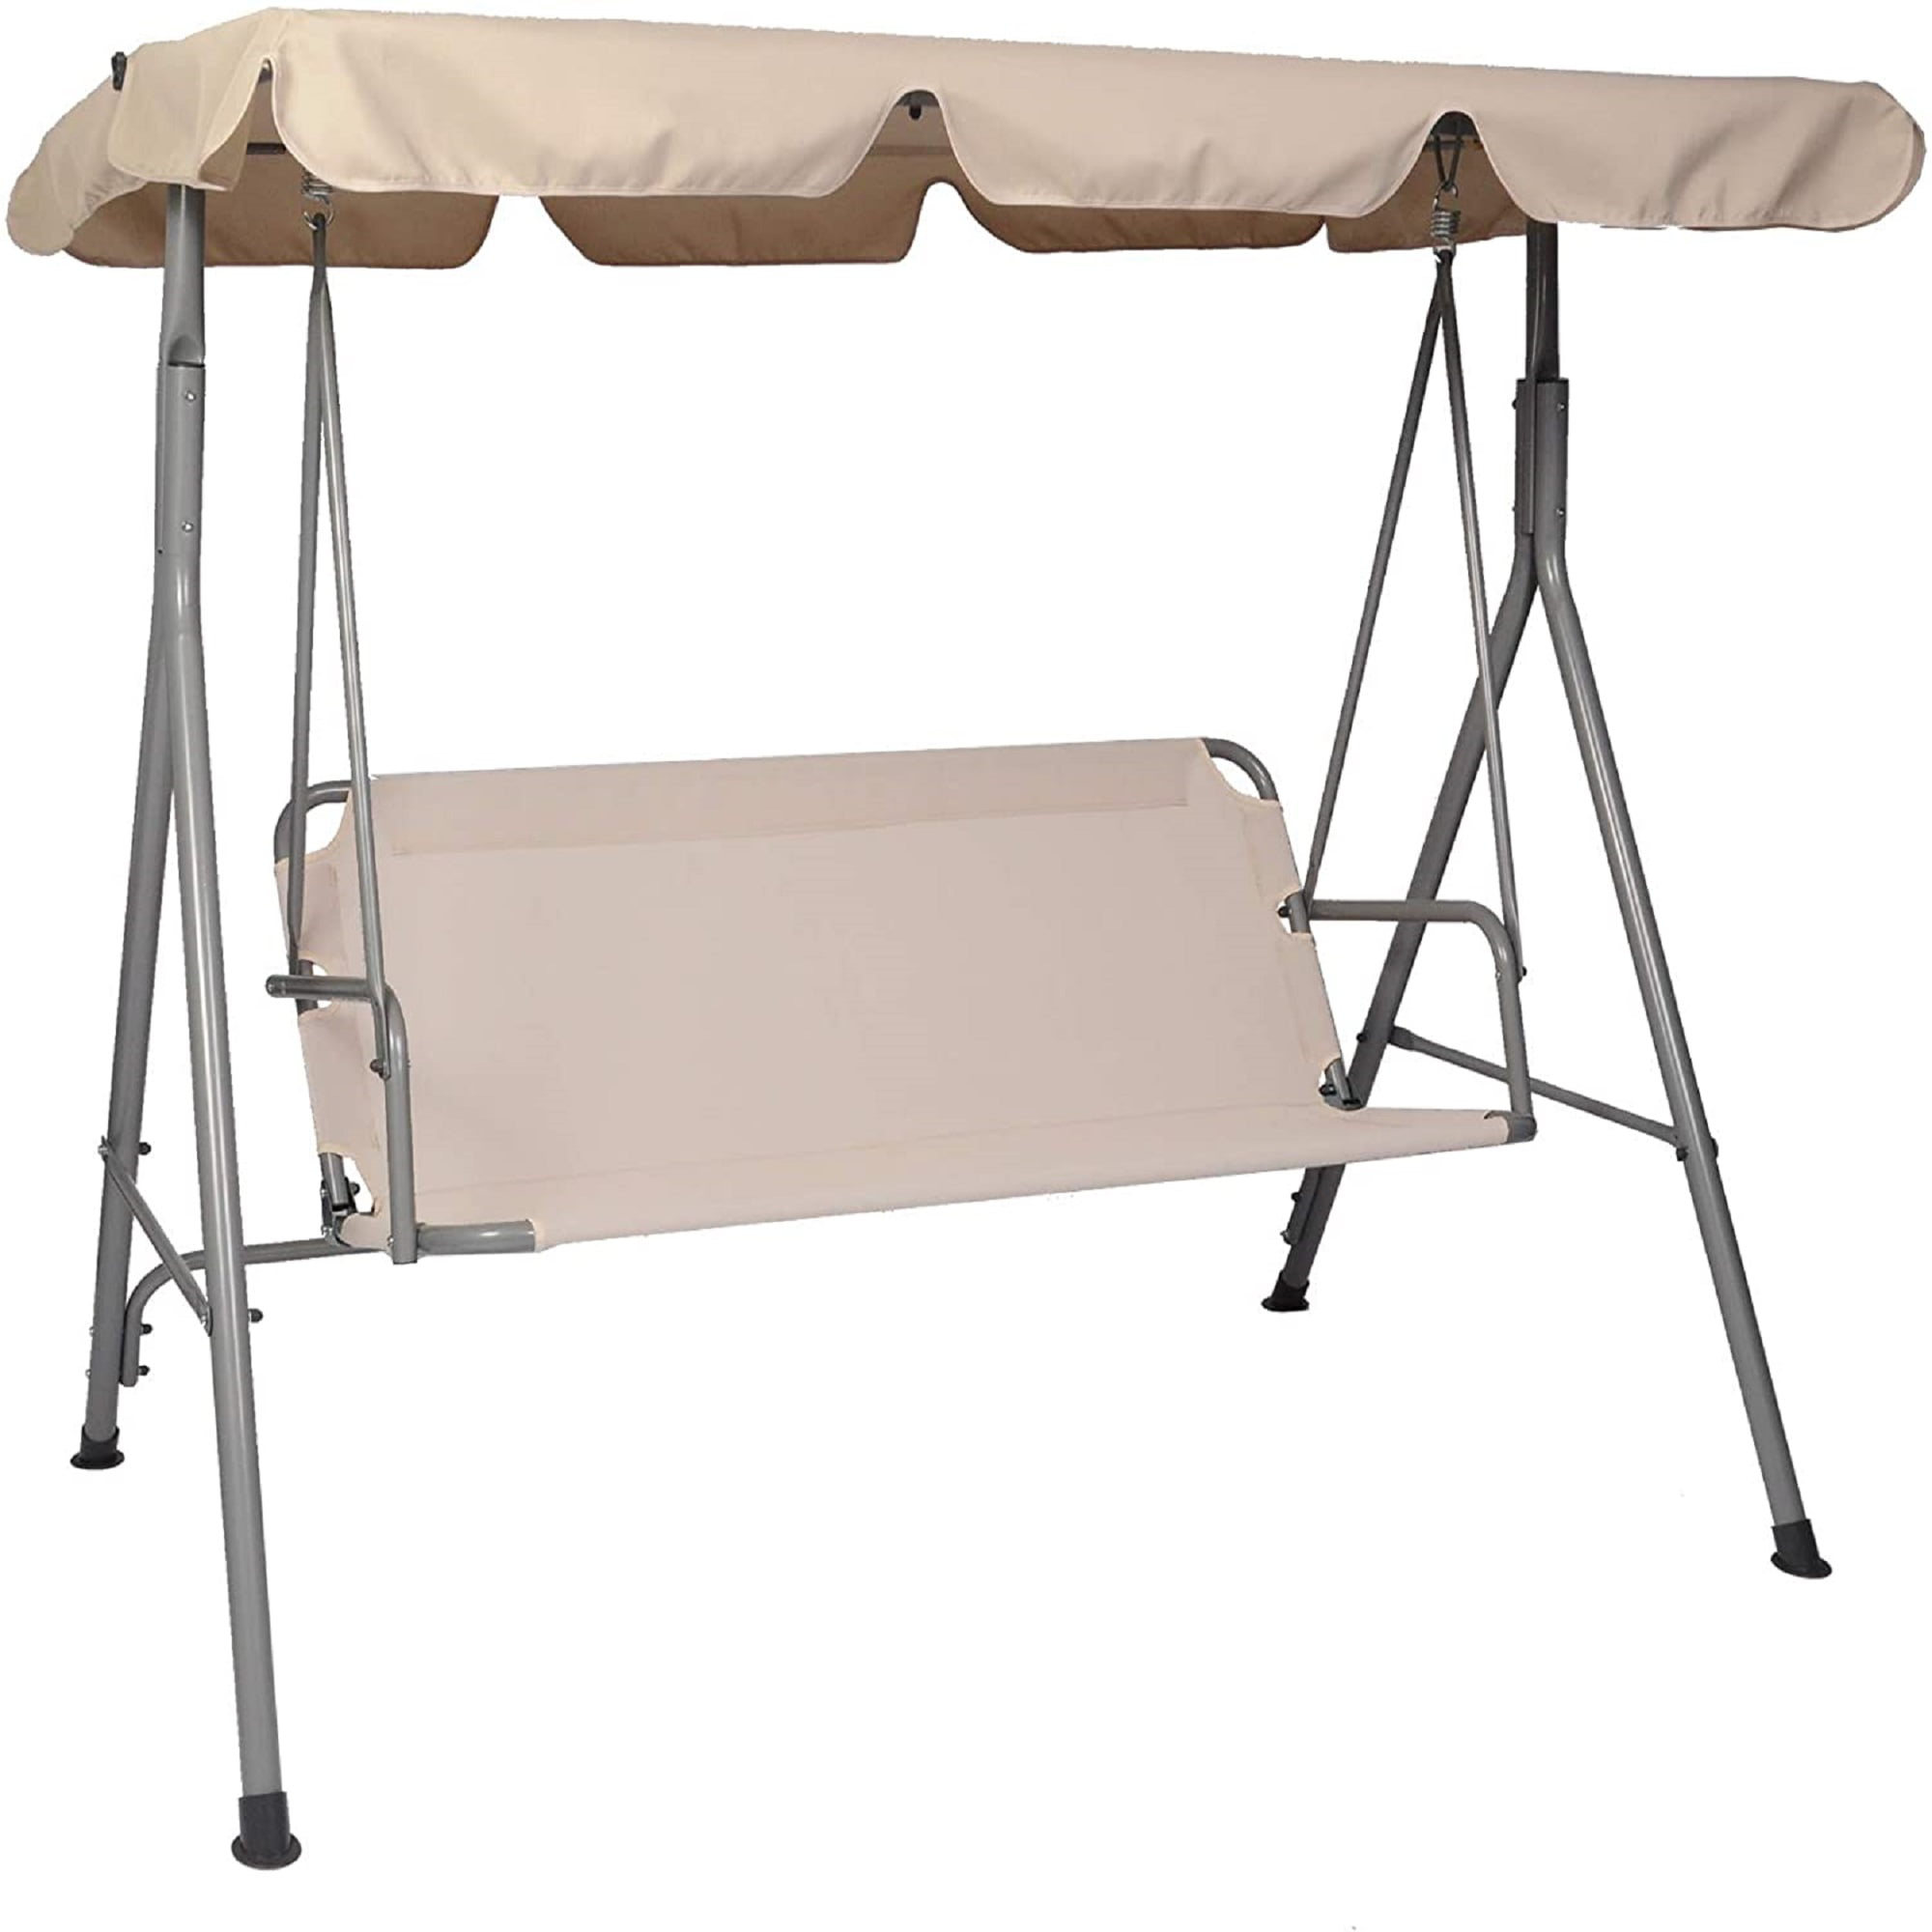 Karmas Patio Swing 3 Person, Outdoor Swing Bench With Stand